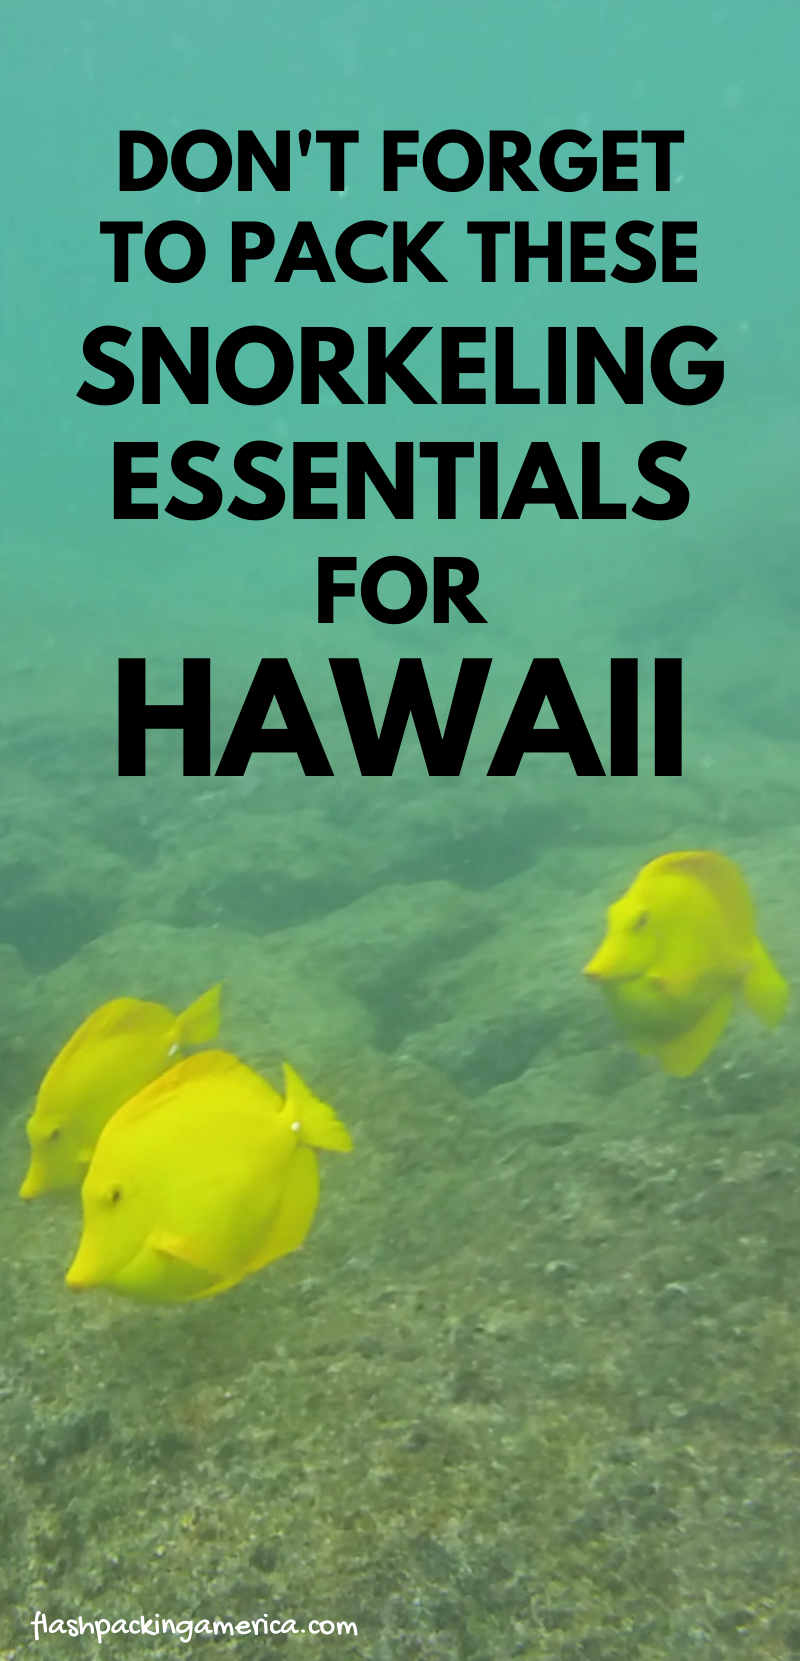 Hawaii travel tips for what to pack for hawaii packing list with snorkeling essentials for beach. clothes, what to wear snorkeling gear and outfit. oahu, maui, big island, kauai. outdoor beach vacation ideas. #flashpackingamerica #beachvacationclothes